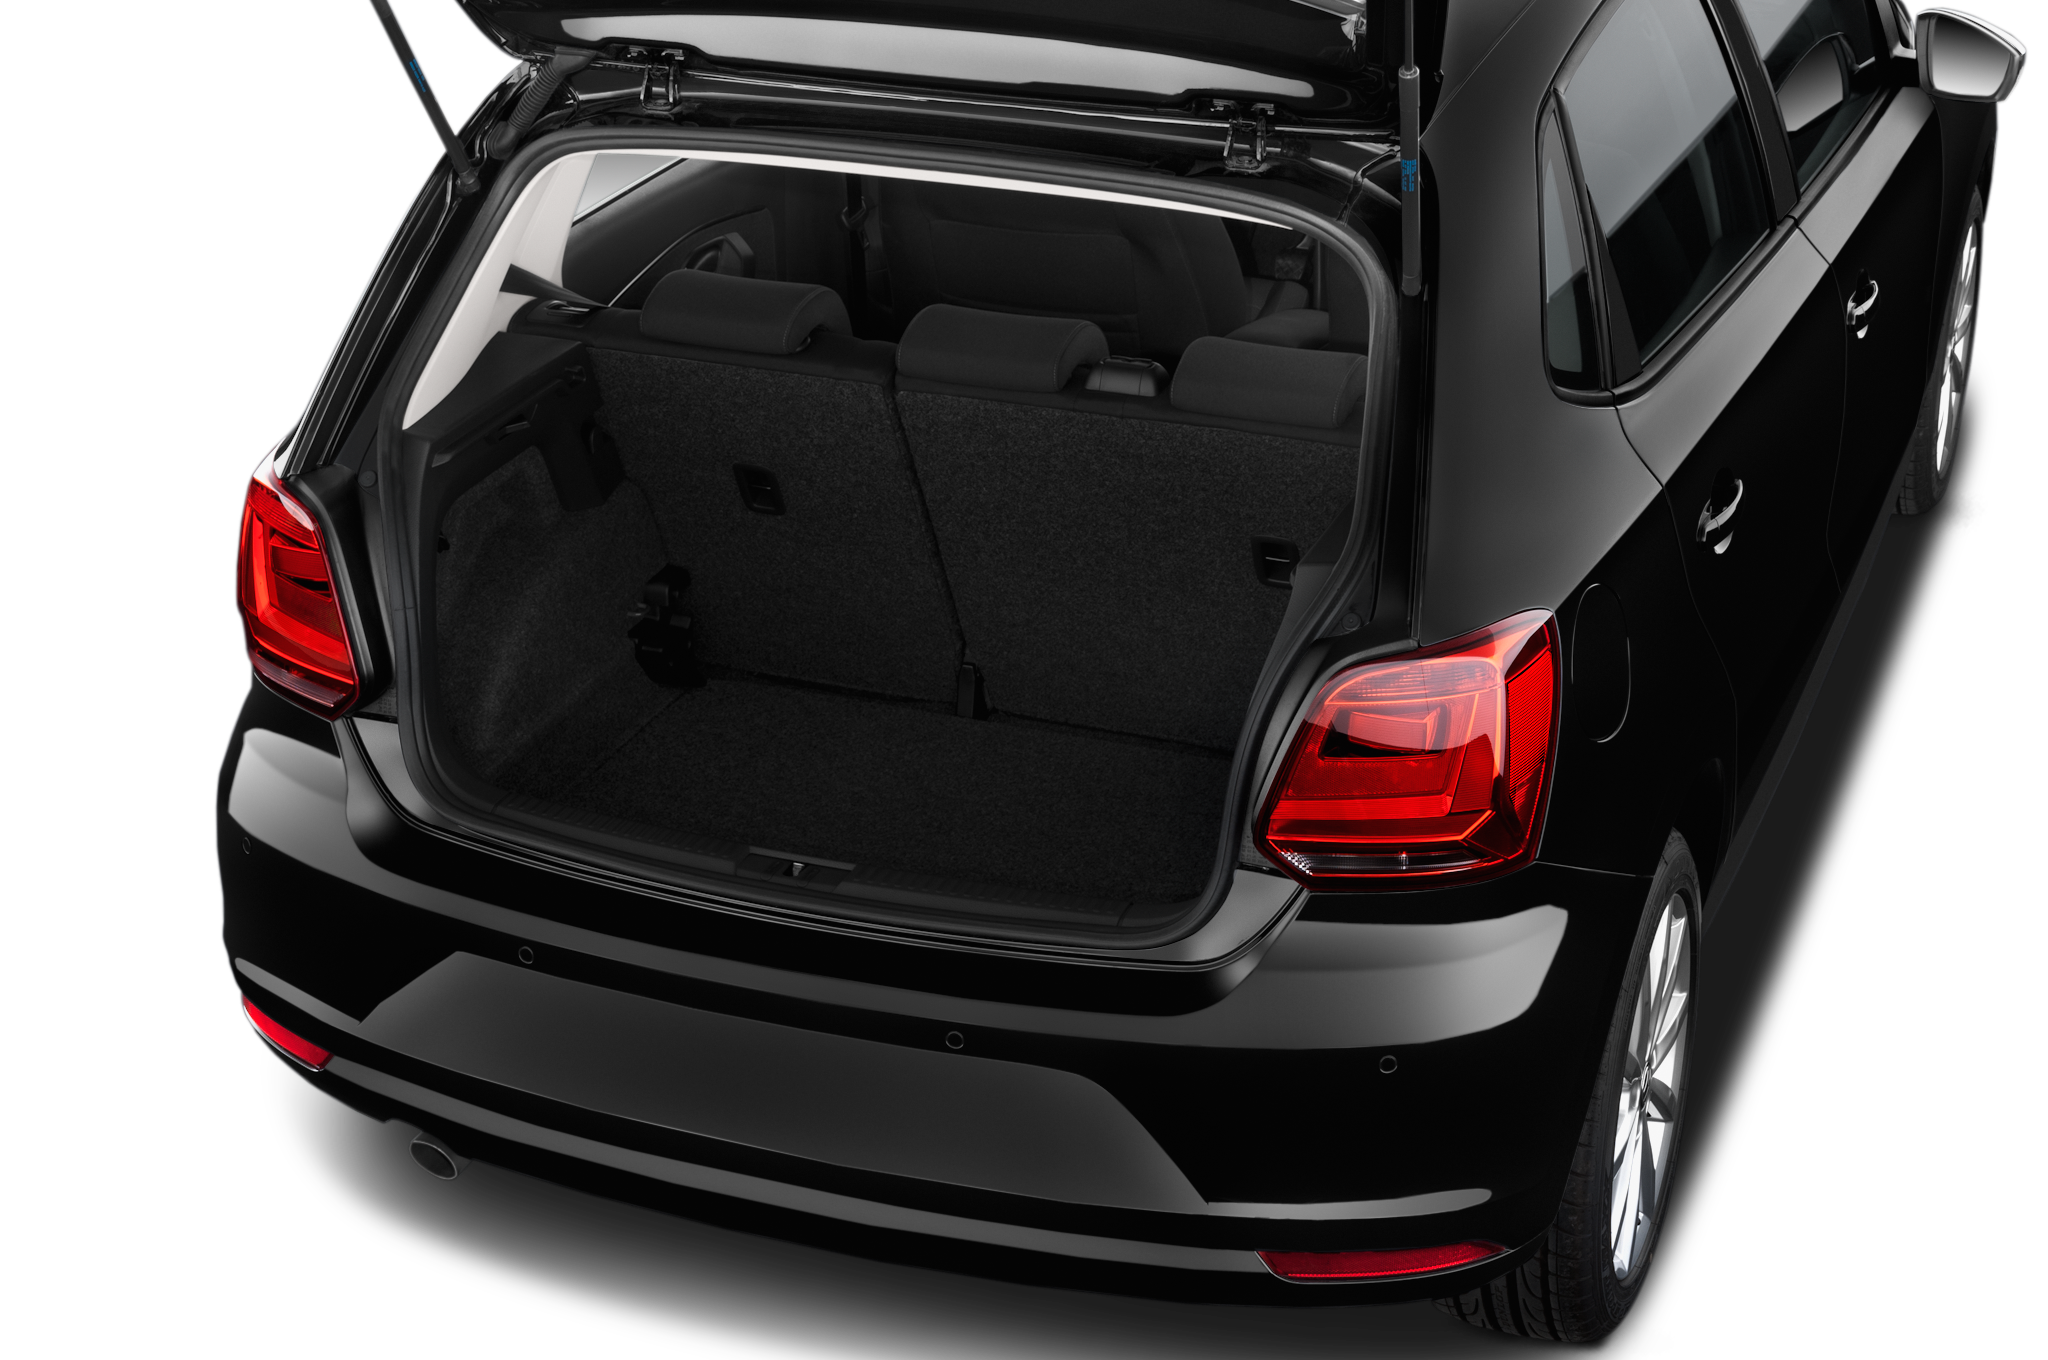 volkswagen polo 1 0 tsi 70kw bluemotion edition private. Black Bedroom Furniture Sets. Home Design Ideas